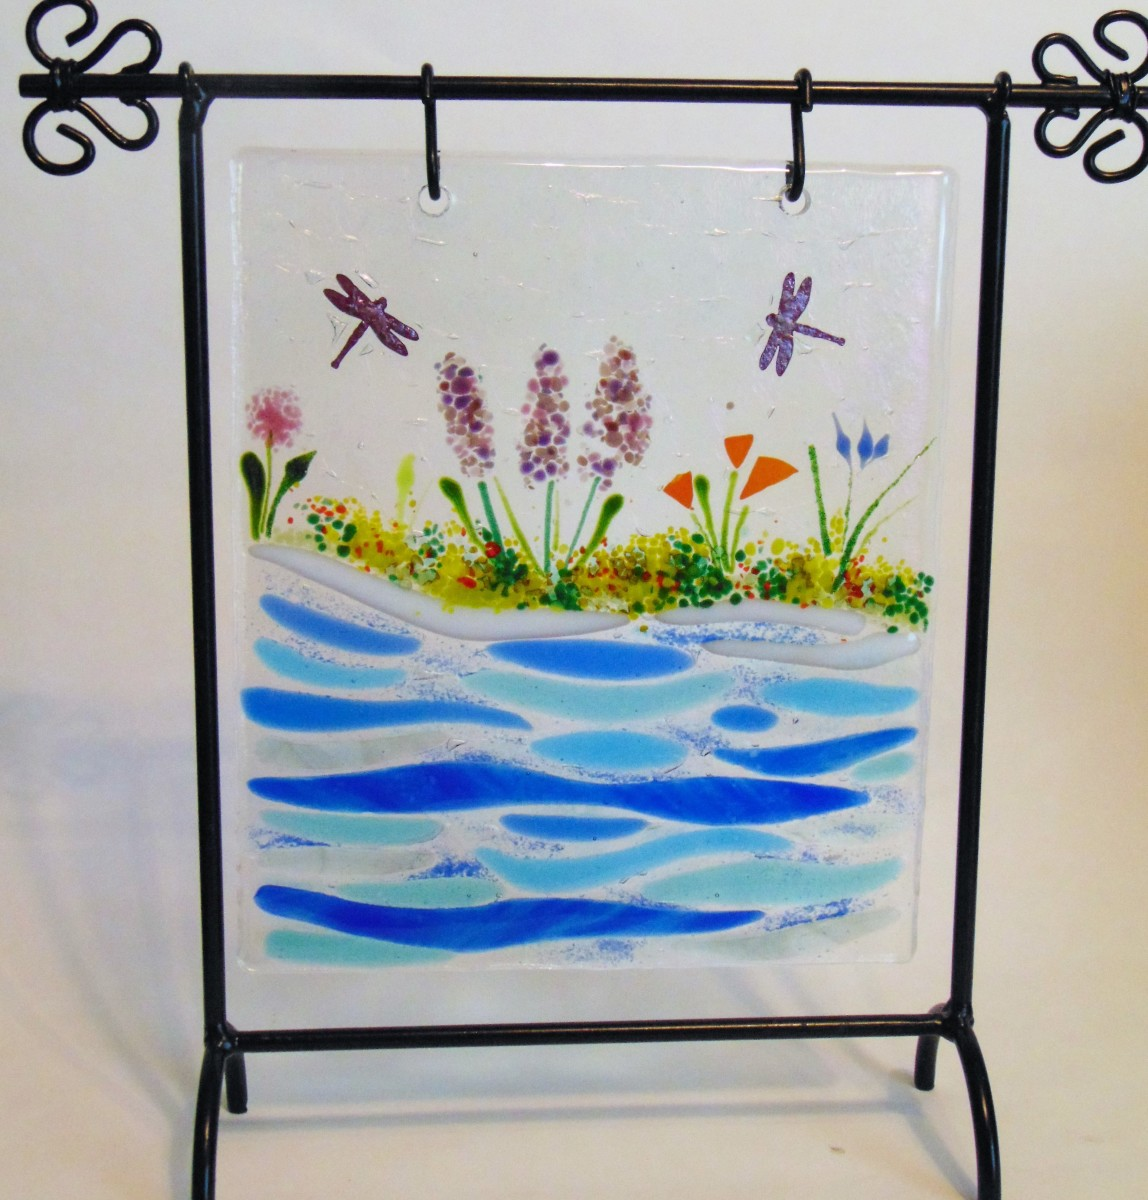 Hanger-Dragonflies by water, includes stand